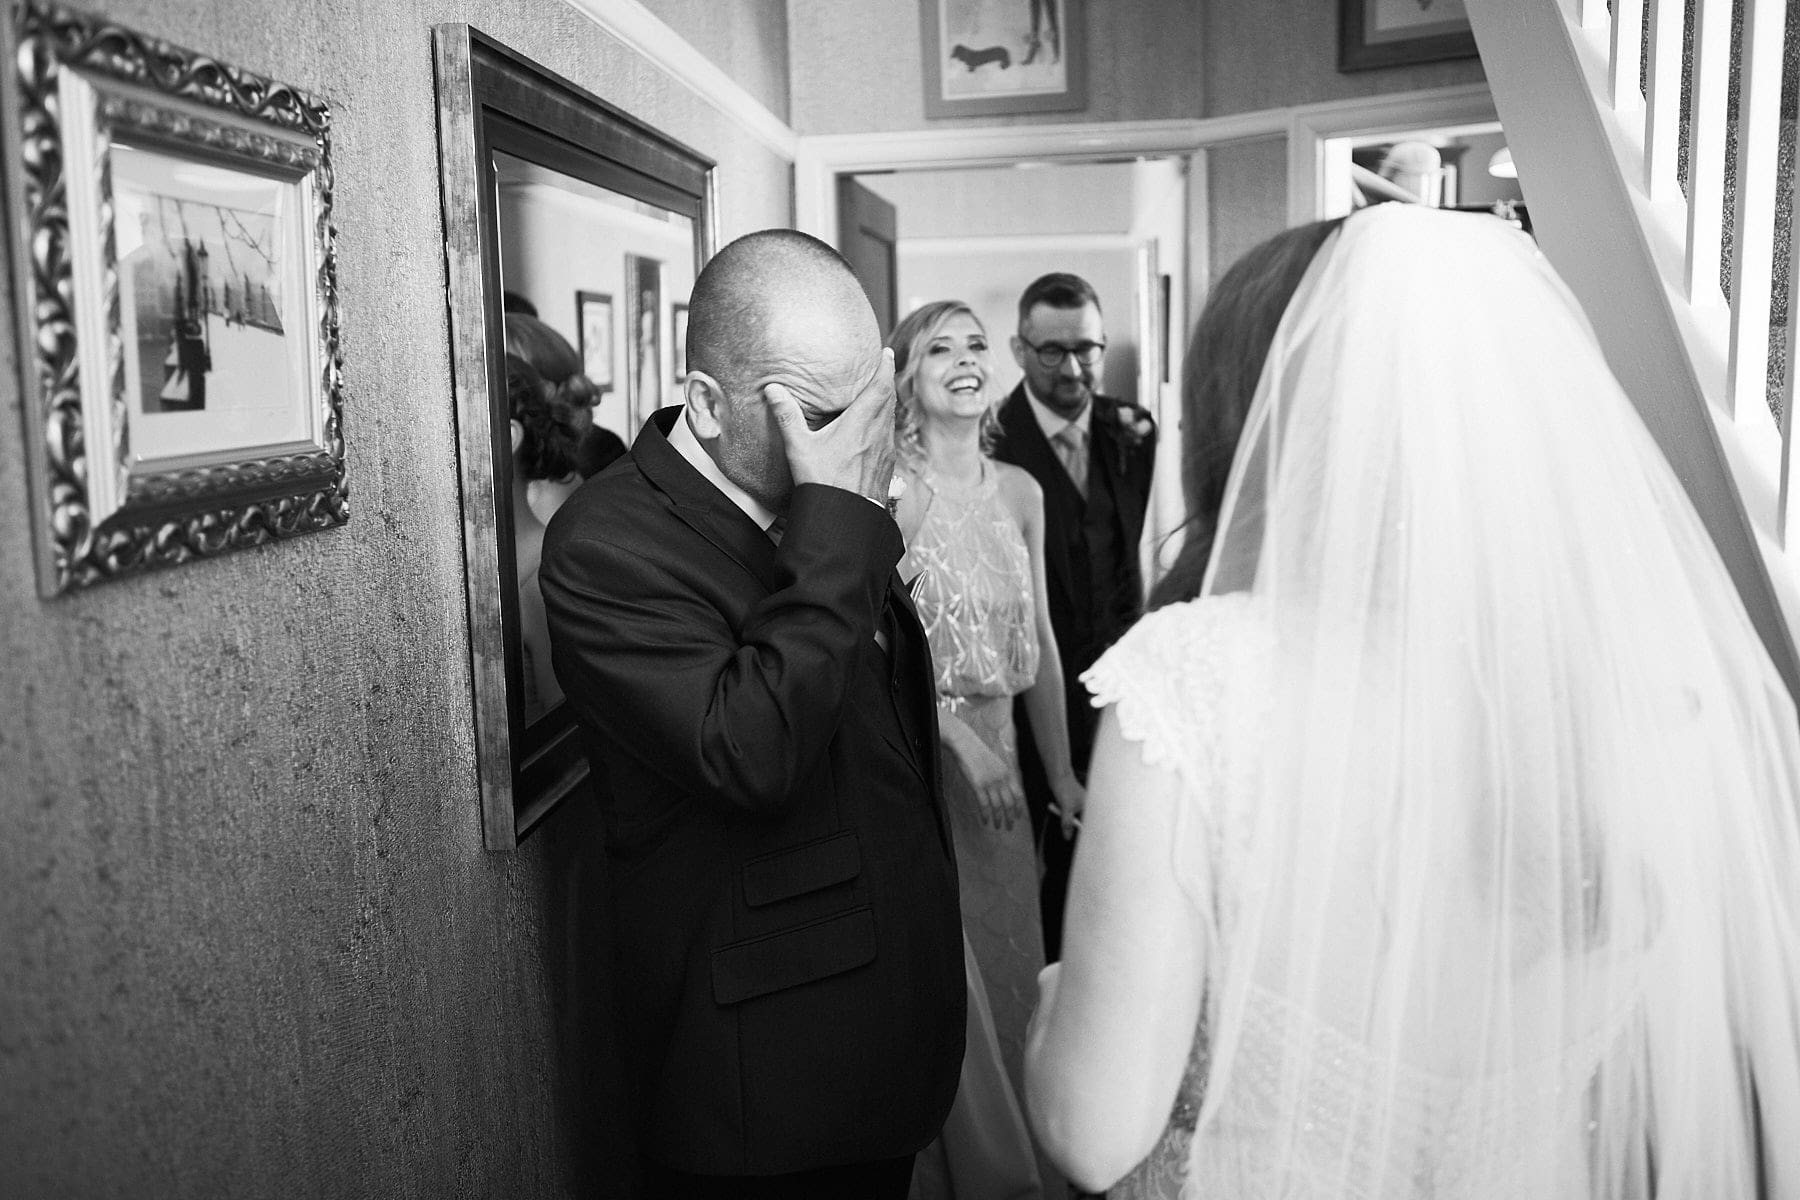 A father is overwhelmed seeing his daughter in her wedding dress for the first time.